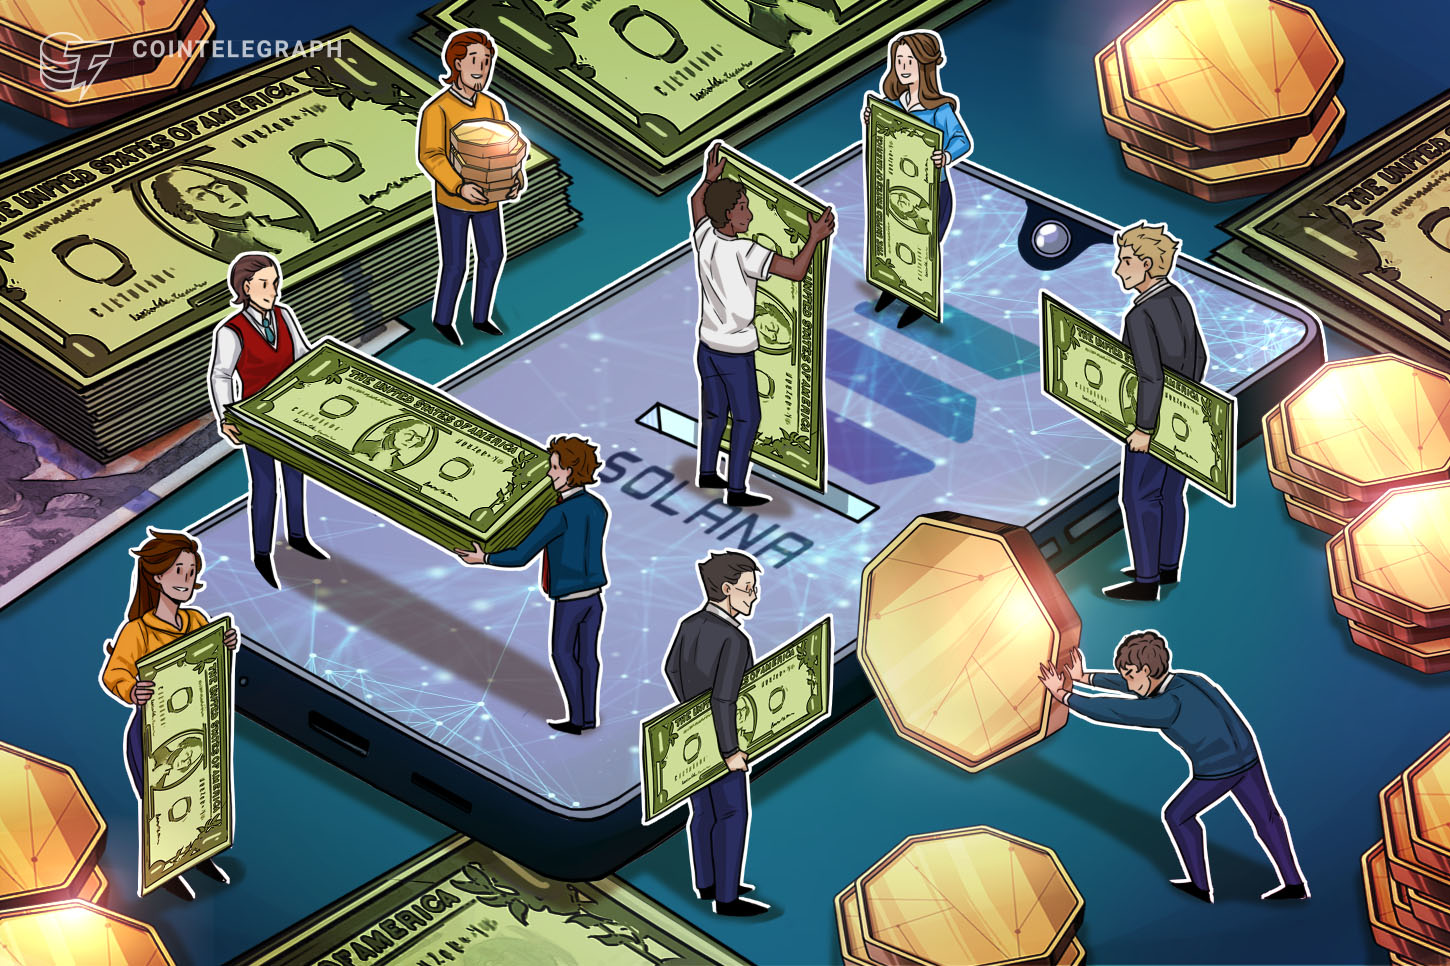 Solana Labs raises $314M via private token sale as ecosystem support expands